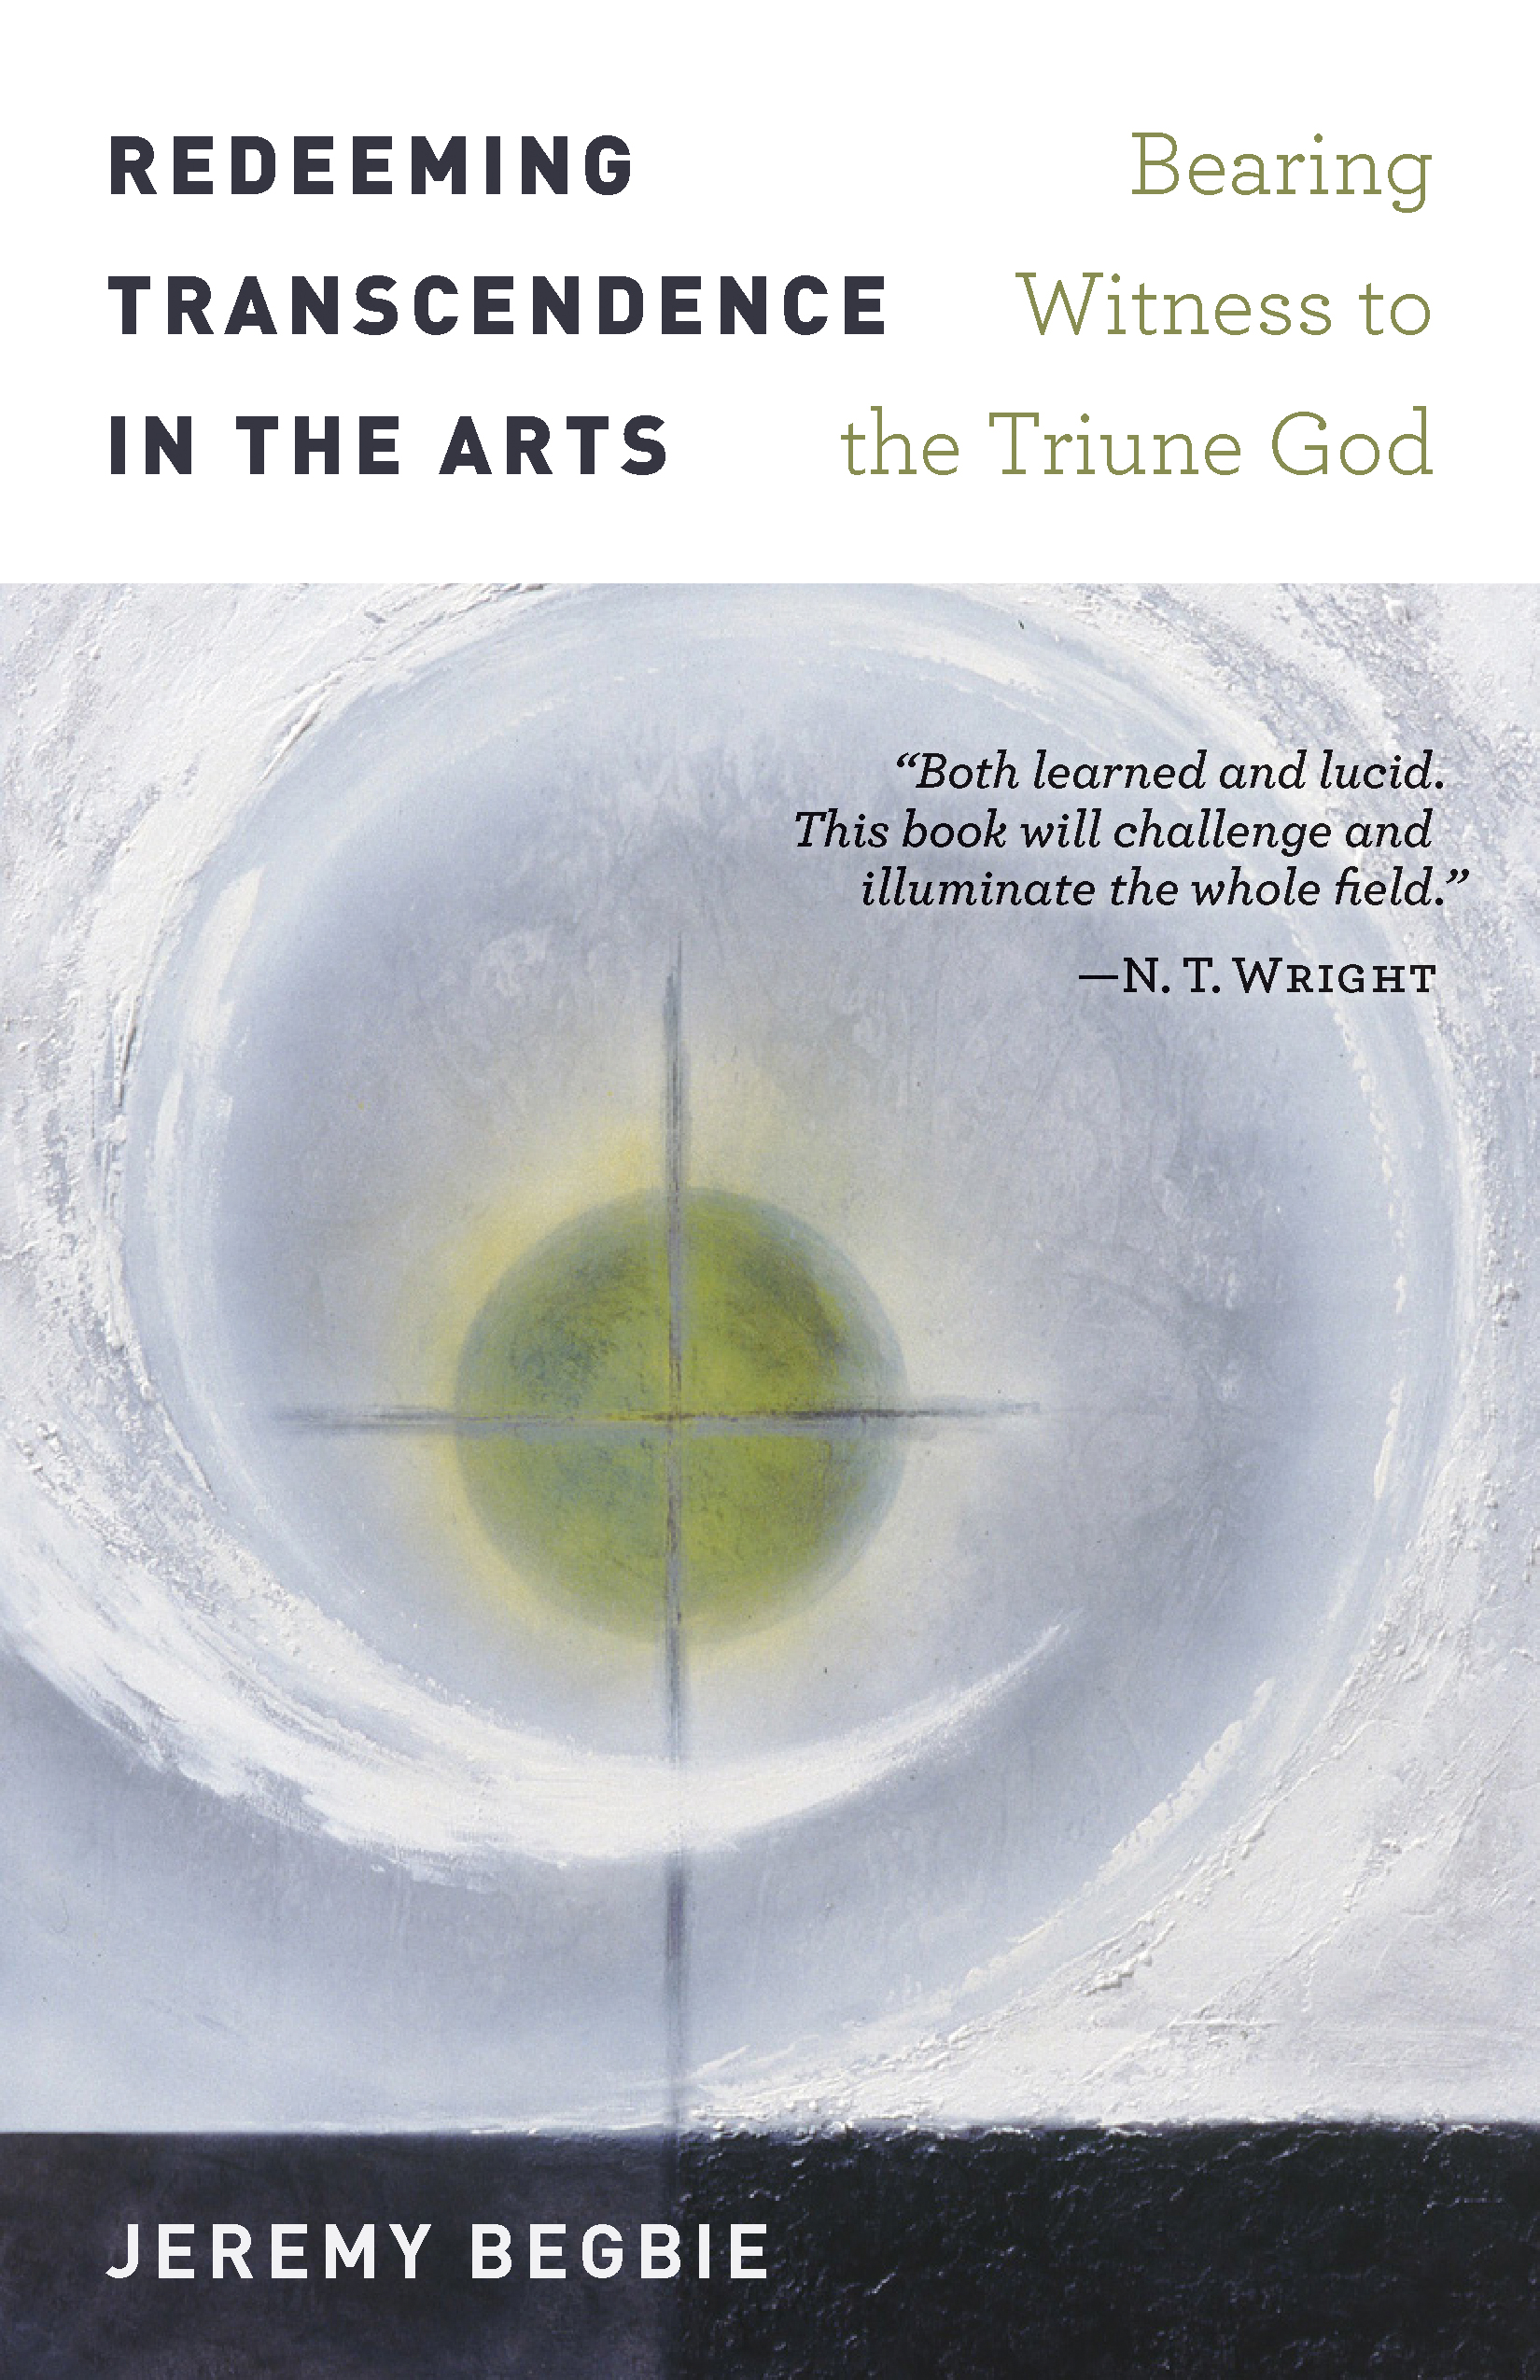 Redeeming Transcendence in the Arts - Jeremy Begbie : Eerdmans